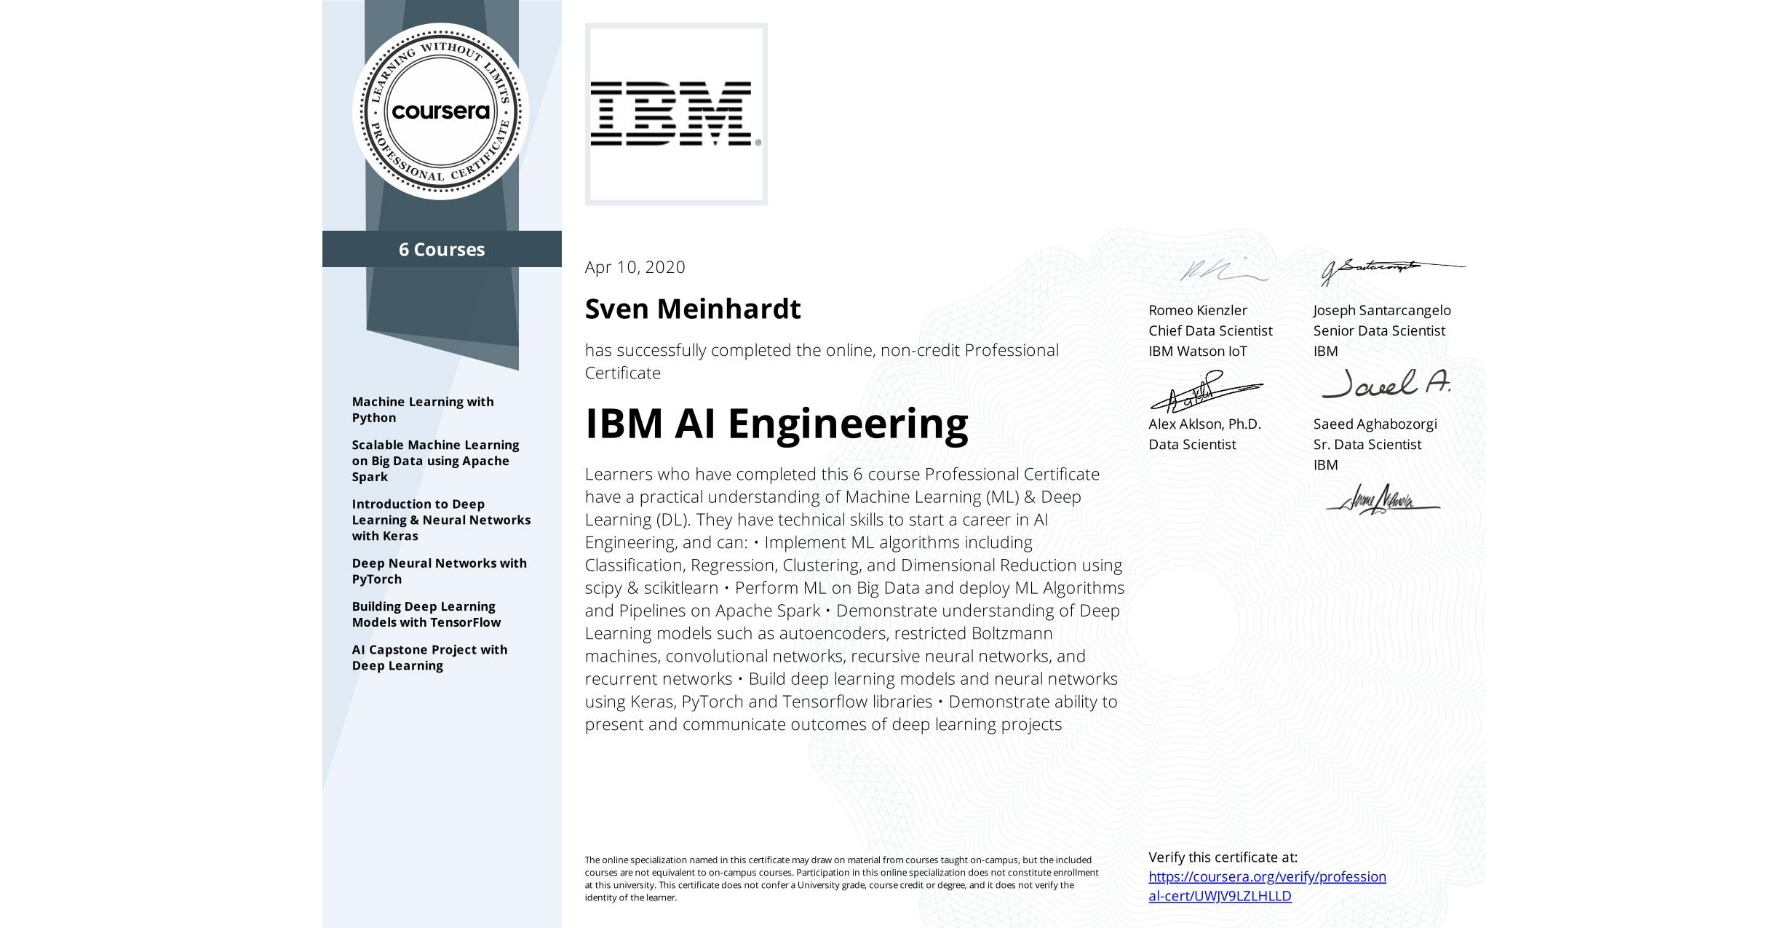 View certificate for Sven Meinhardt, IBM AI Engineering, offered through Coursera. Learners who have completed this 6 course Professional Certificate have a practical understanding of Machine Learning (ML) & Deep Learning (DL). They have technical skills to start a career in AI Engineering, and can: •	Implement ML algorithms including Classification, Regression, Clustering, and Dimensional Reduction using scipy & scikitlearn •	Perform ML on Big Data and deploy ML Algorithms and Pipelines on Apache Spark •	Demonstrate understanding of Deep Learning models such as autoencoders, restricted Boltzmann machines,  convolutional networks, recursive neural networks, and recurrent networks •	Build deep learning models and neural networks using Keras, PyTorch and Tensorflow libraries •	Demonstrate ability to present and communicate outcomes of deep learning projects